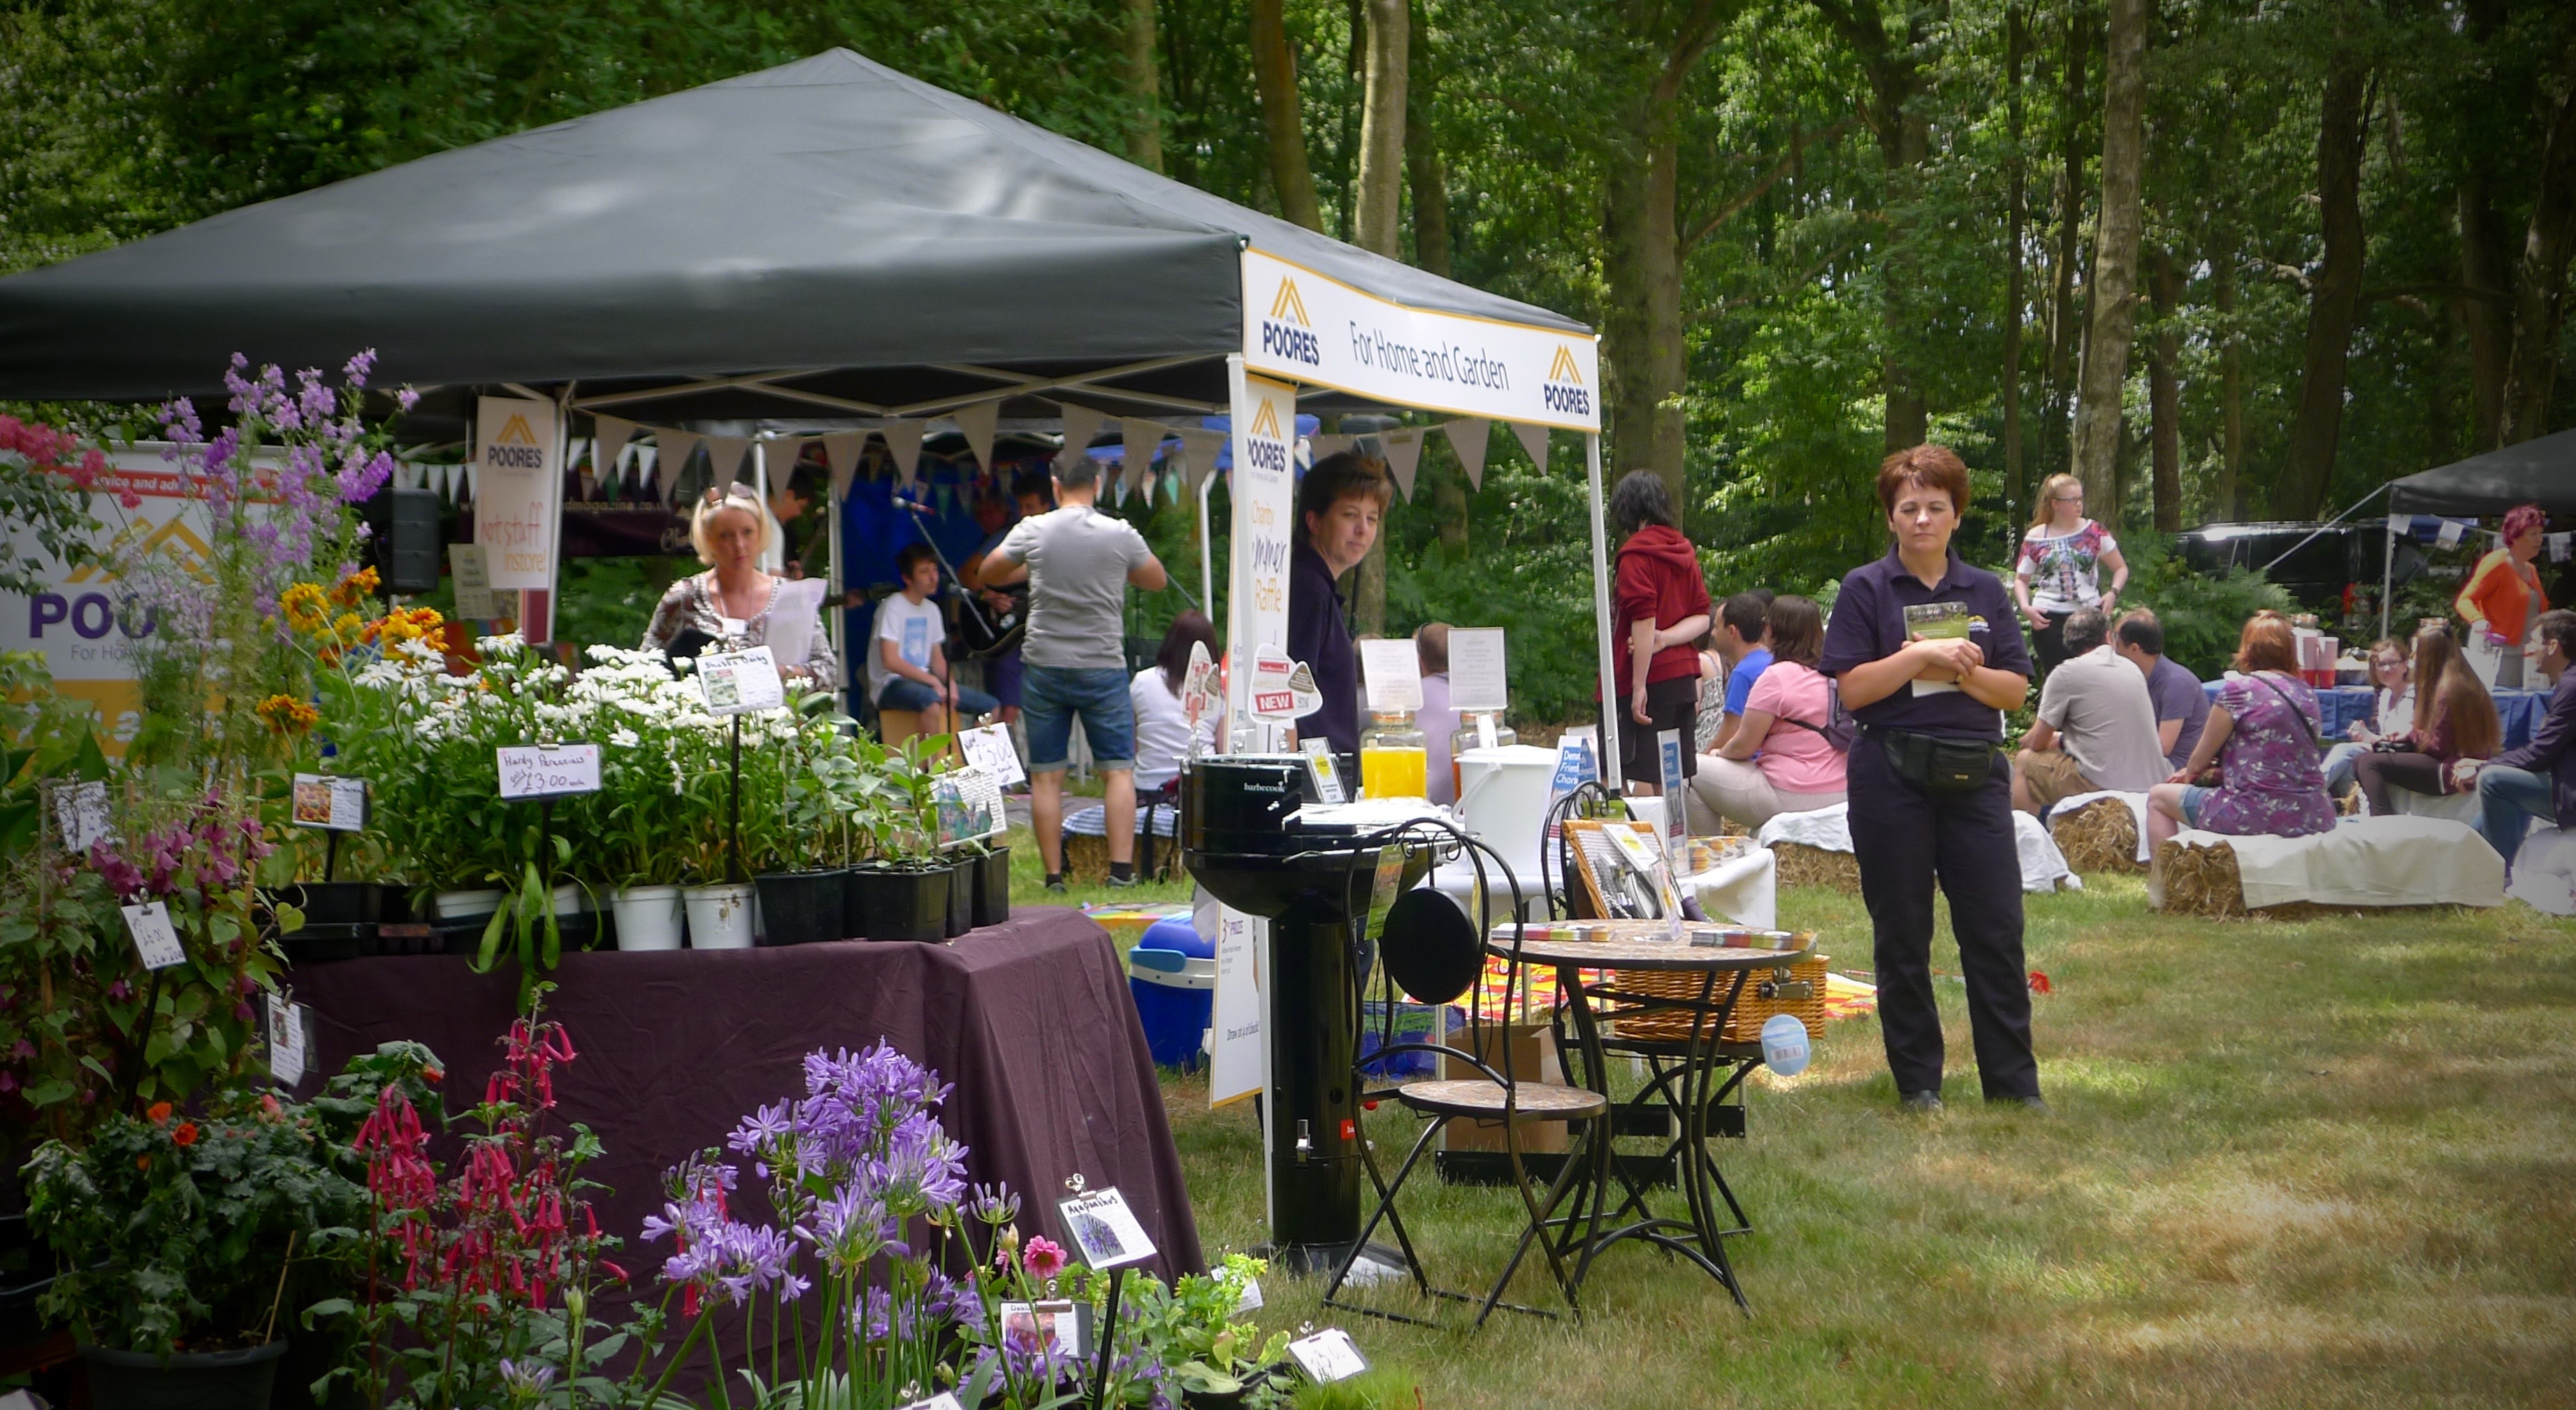 village day 2015 poores